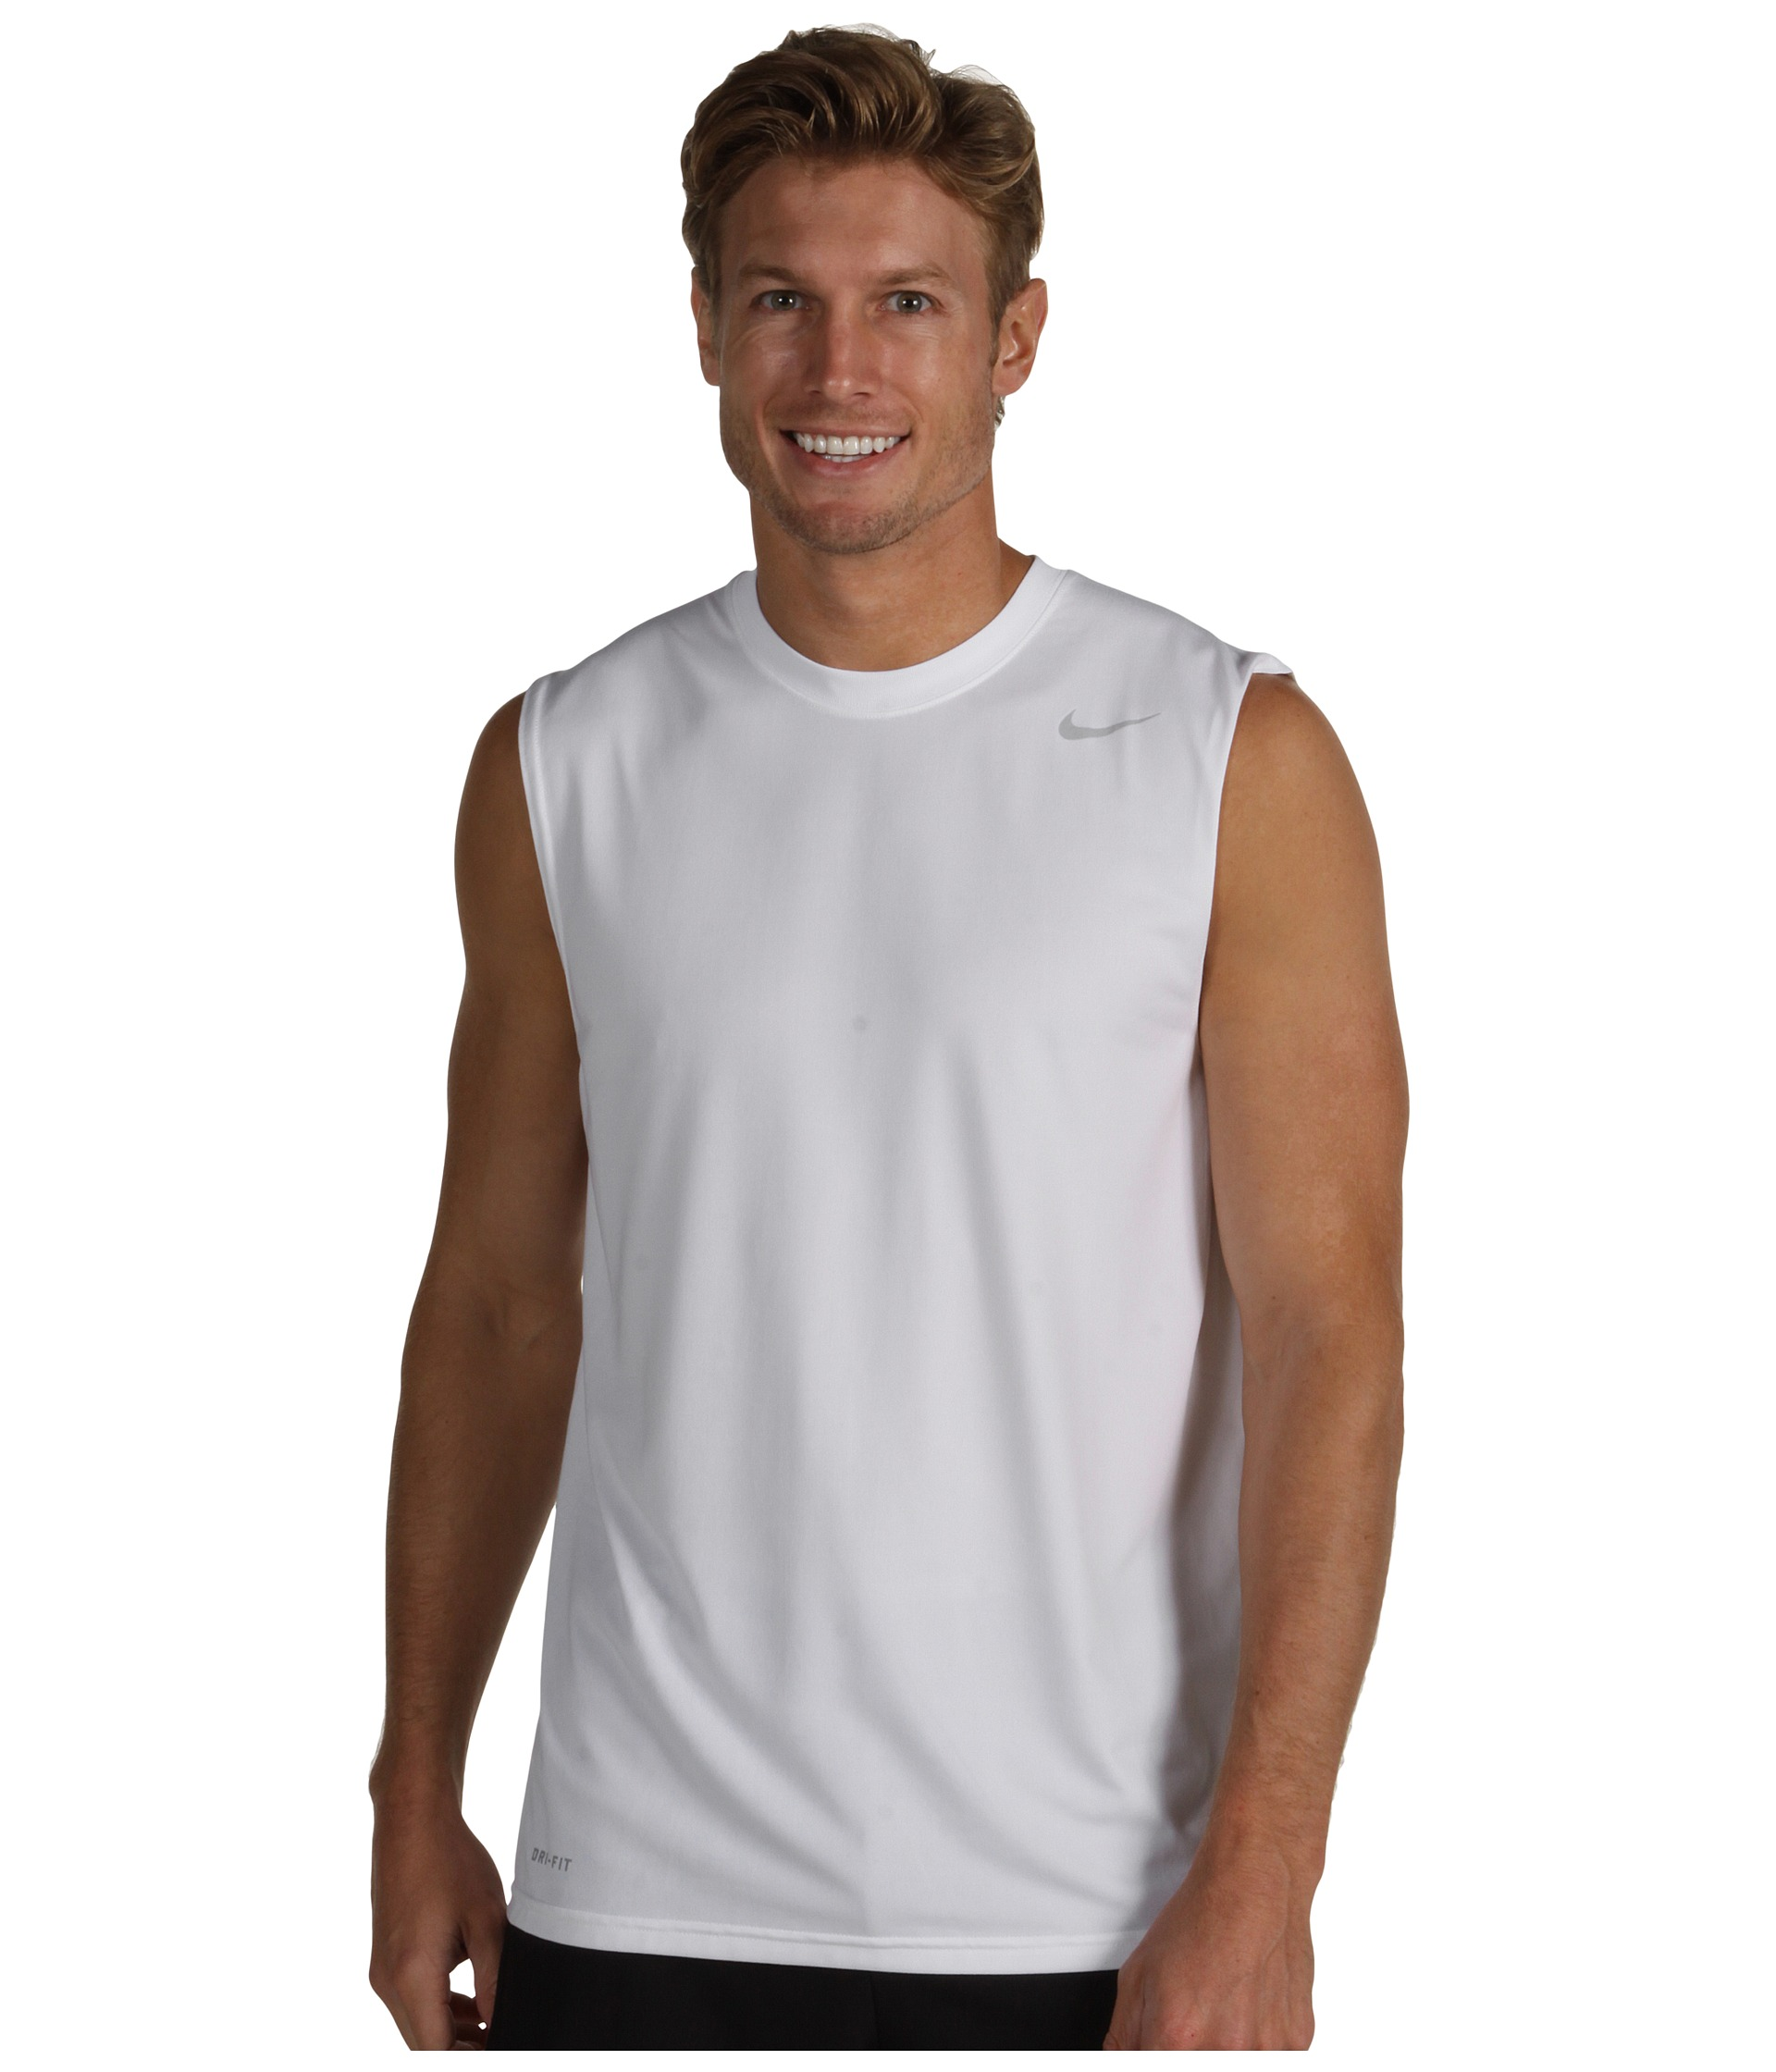 Nike dri fit legend sleeveless training shirt zappos for Buy dri fit shirts